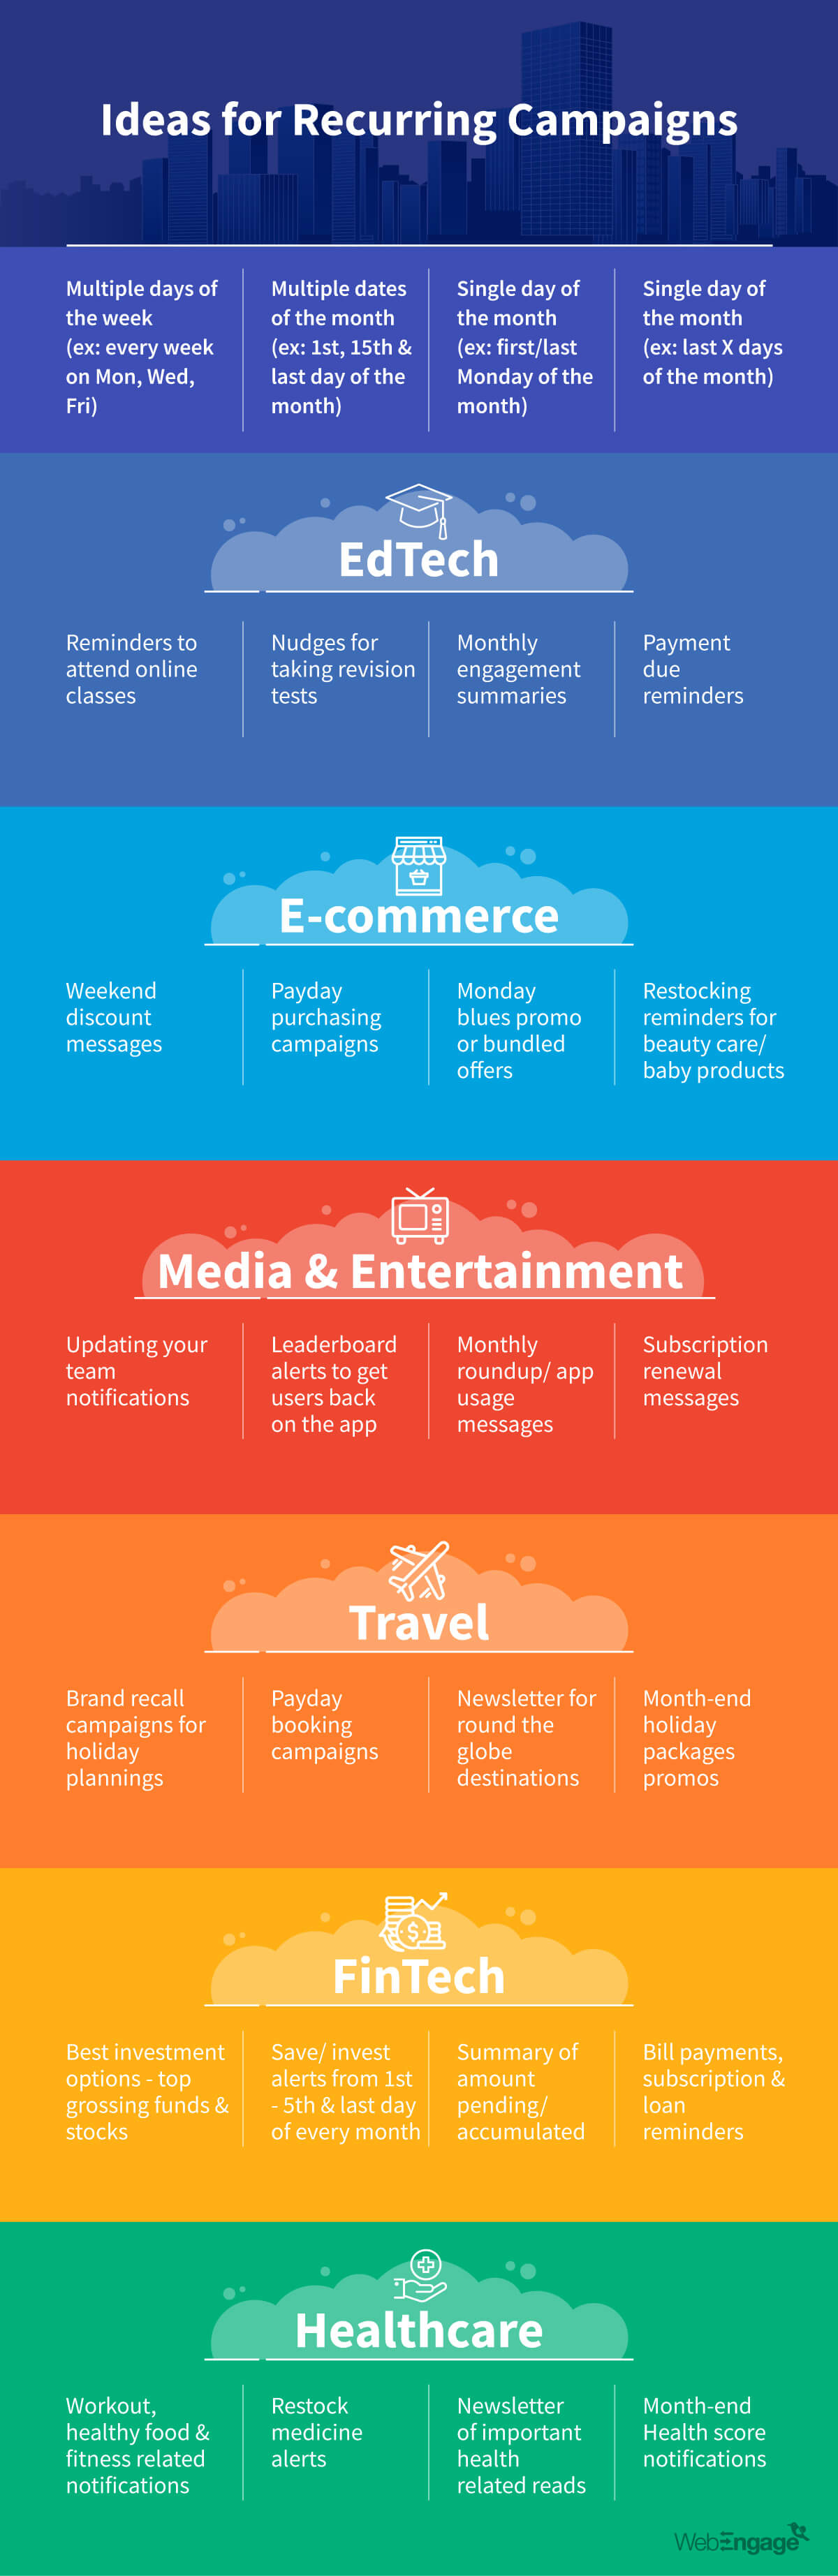 Infographic recurring campaign ideas